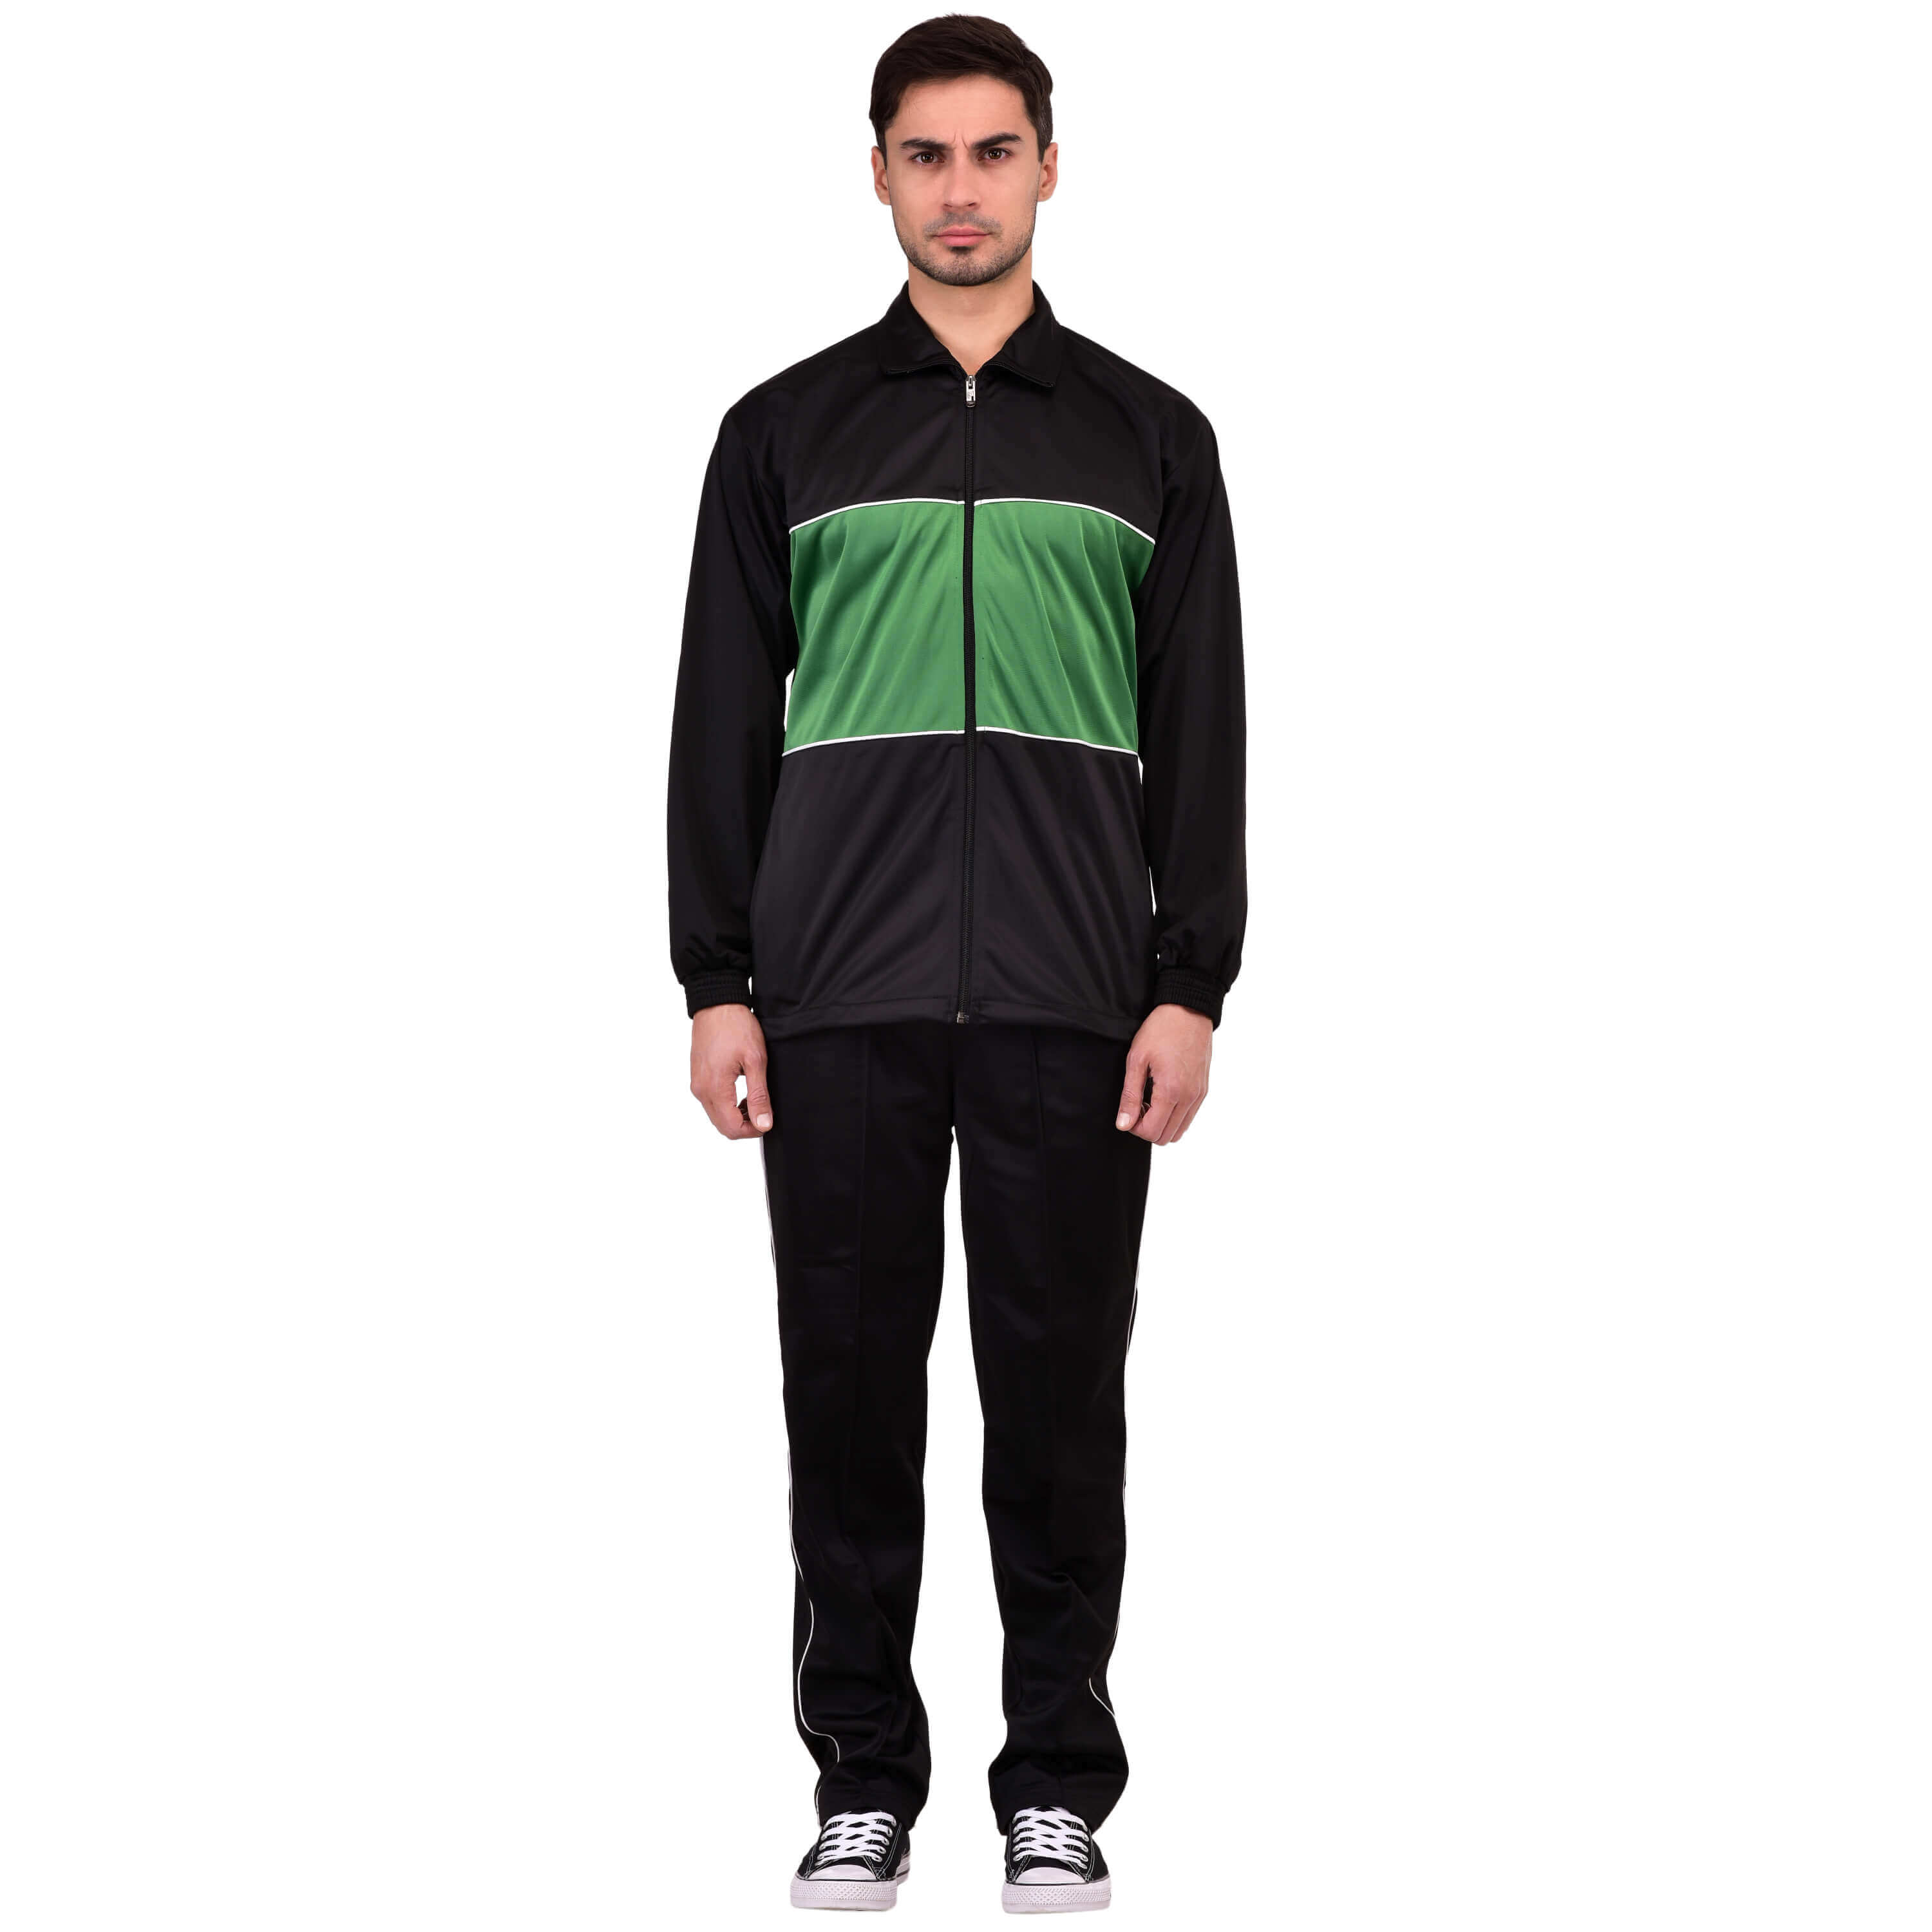 Full Tracksuit Manufacturers in Thiruvananthapuram